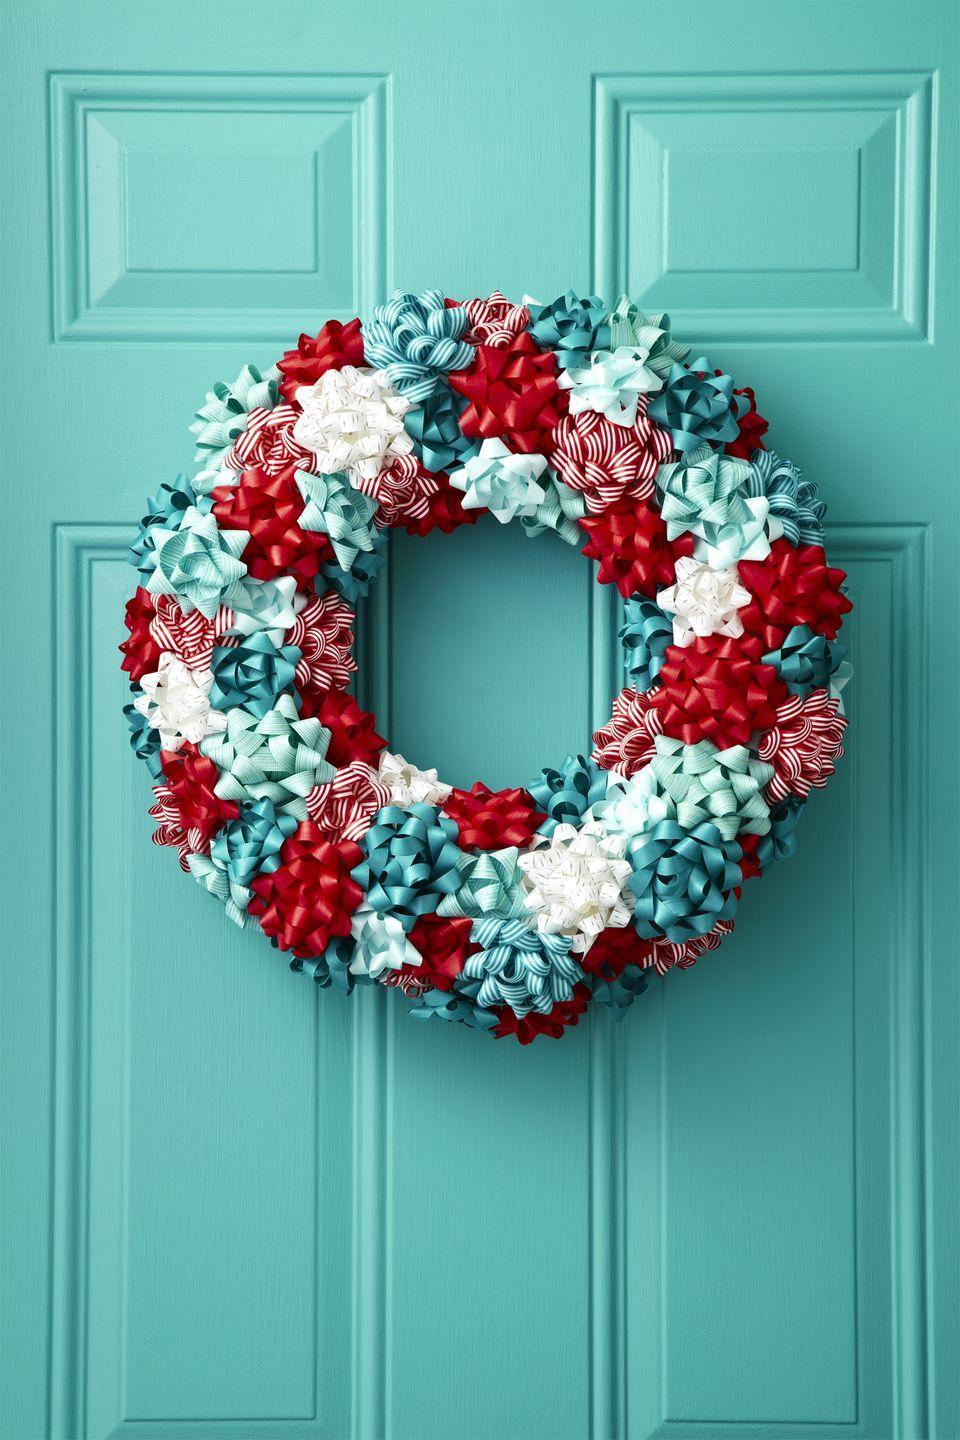 "<p>For a burst of color, embellish a plain foam wreath with leftover bows from last year's wrapping. </p><p><a class=""link rapid-noclick-resp"" href=""https://www.amazon.com/Tatuo-Christmas-Metallic-Adhesive-Decorating/dp/B07HSZ6PXX/?tag=syn-yahoo-20&ascsubtag=%5Bartid%7C10055.g.2361%5Bsrc%7Cyahoo-us"" rel=""nofollow noopener"" target=""_blank"" data-ylk=""slk:SHOP GIFT BOWS"">SHOP GIFT BOWS</a><br></p>"